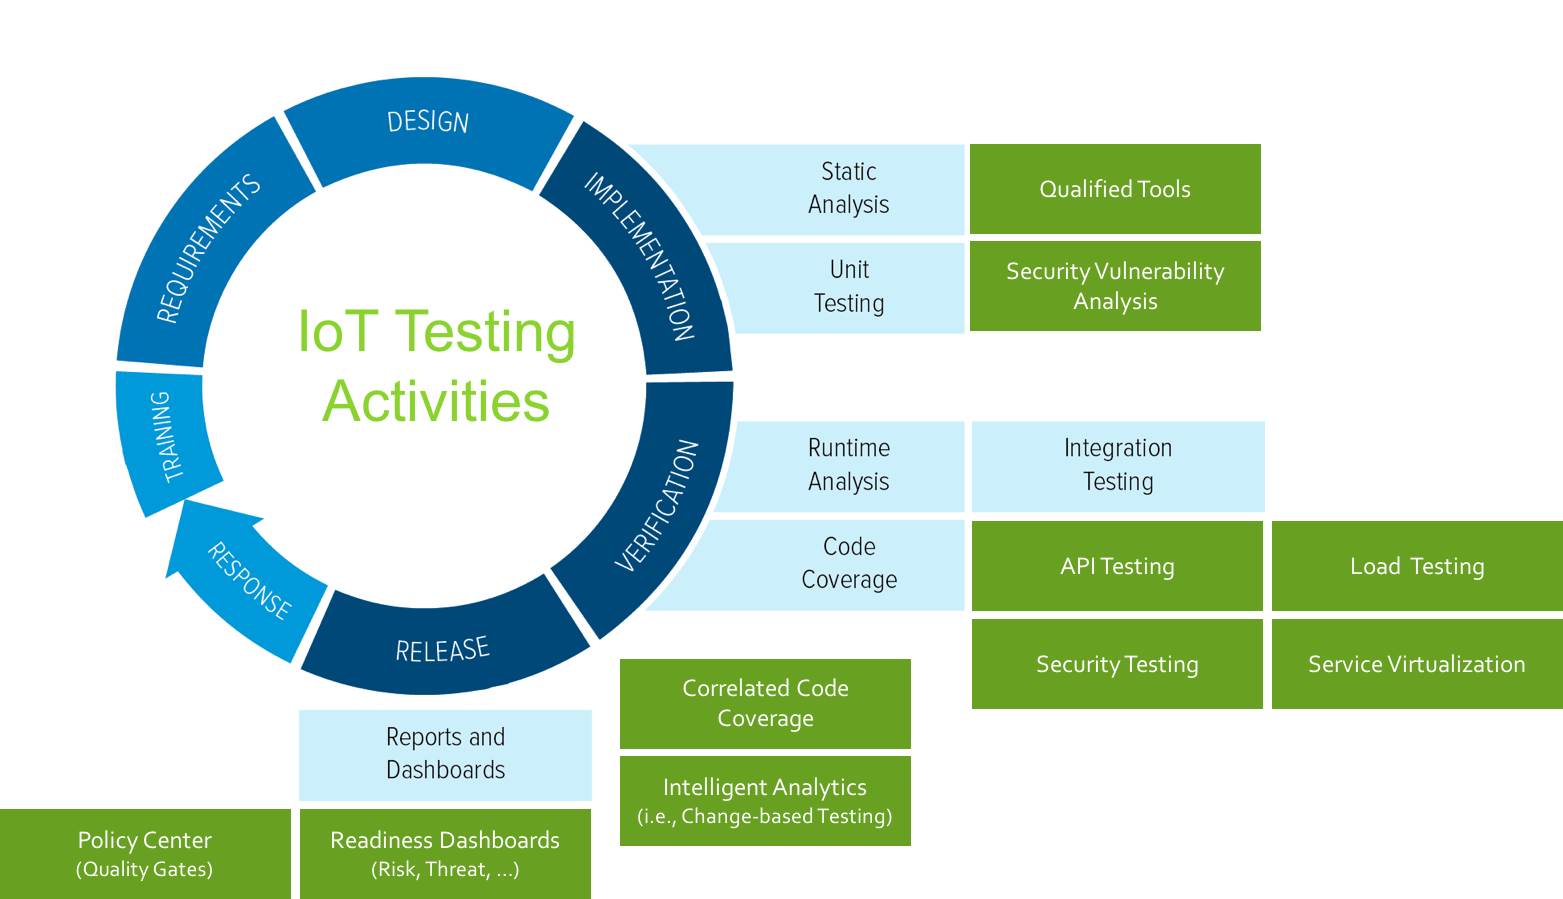 Automated Service-Based Testing is the Key to High-Quality, Secure IoT devices